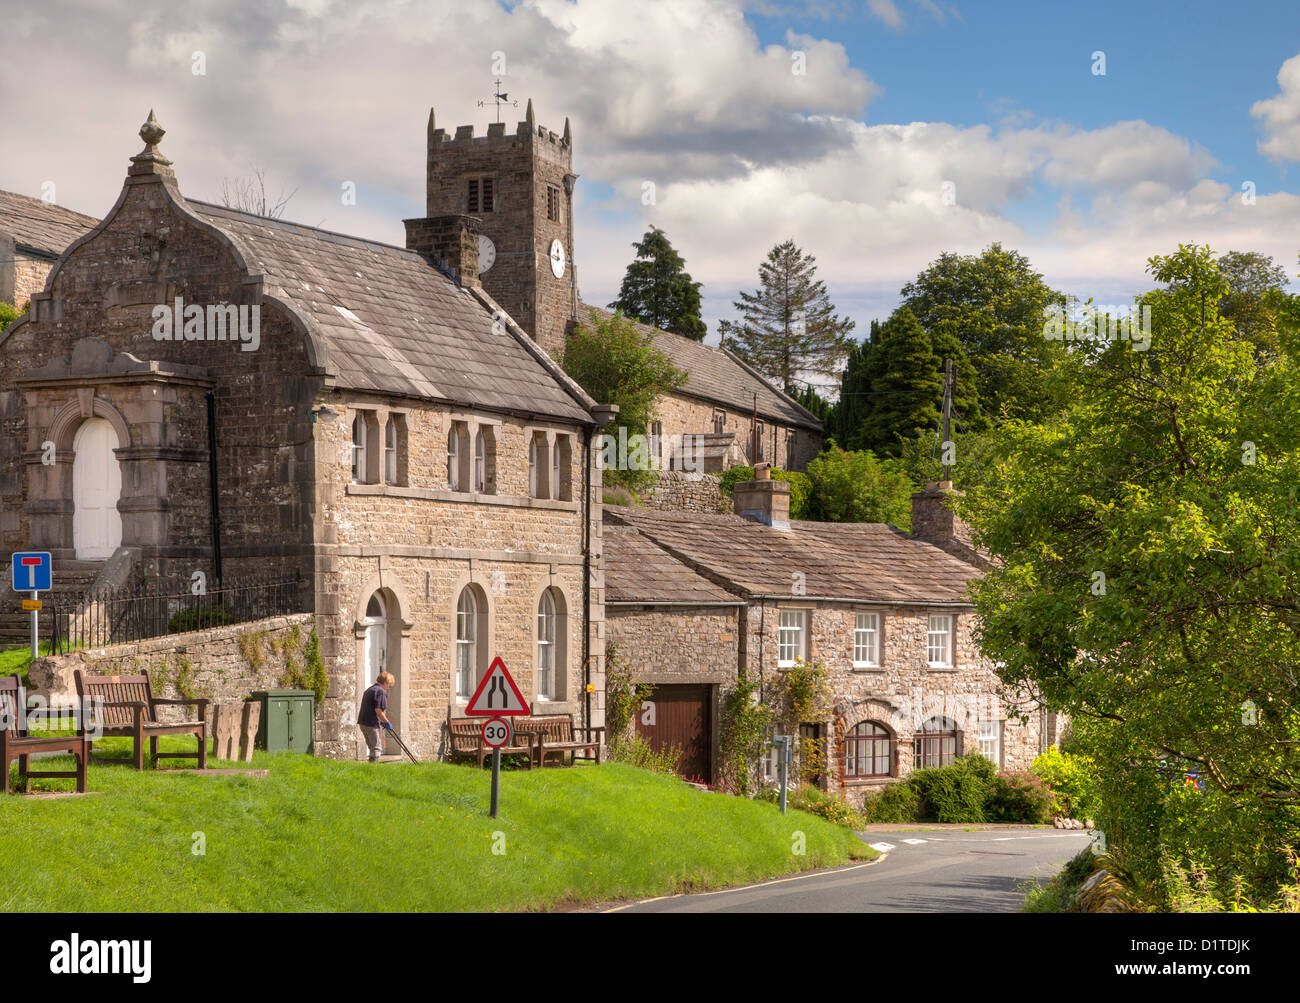 Muker village showing church, chapel and cottages, Swaledale, Yorkshire Dales, England - Stock Image